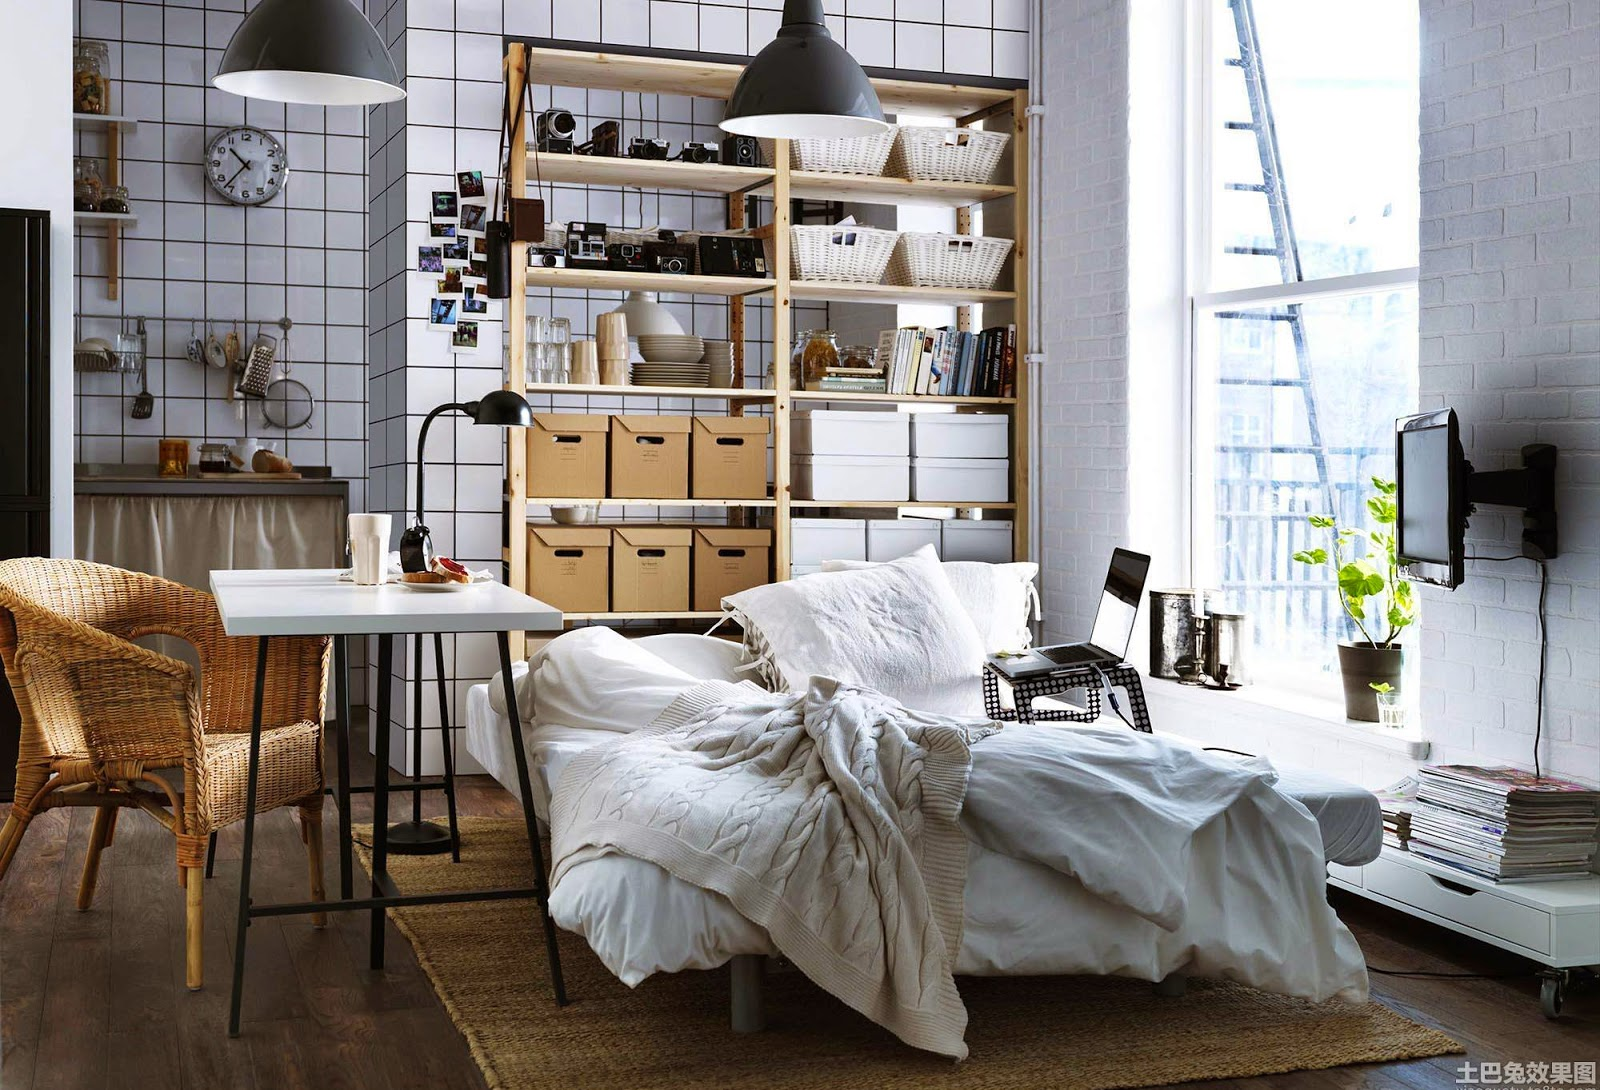 Room Decorating Ideas Bedroom on a Budget